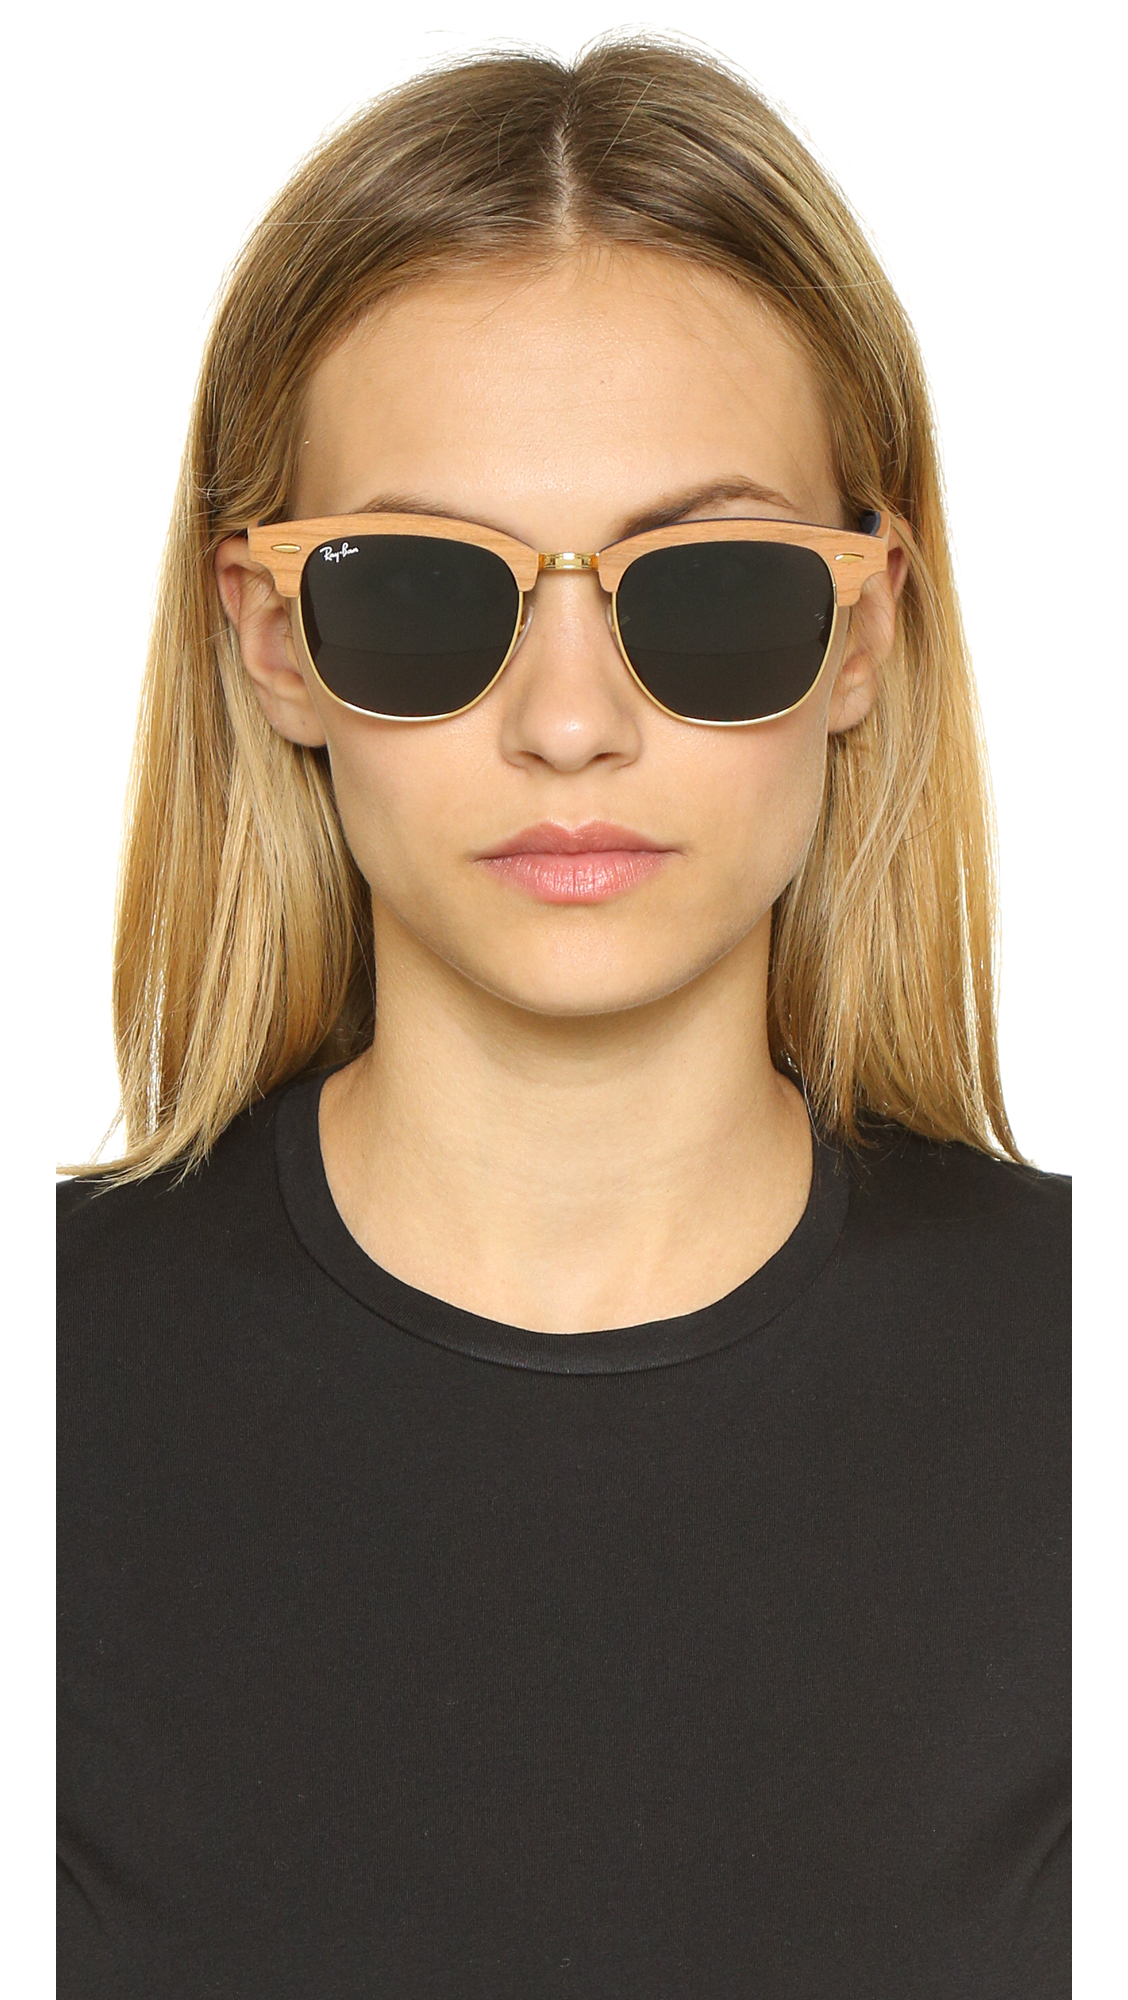 Ray-Ban Clubmaster Wood Sunglasses   SHOPBOP fa4a87c6b8